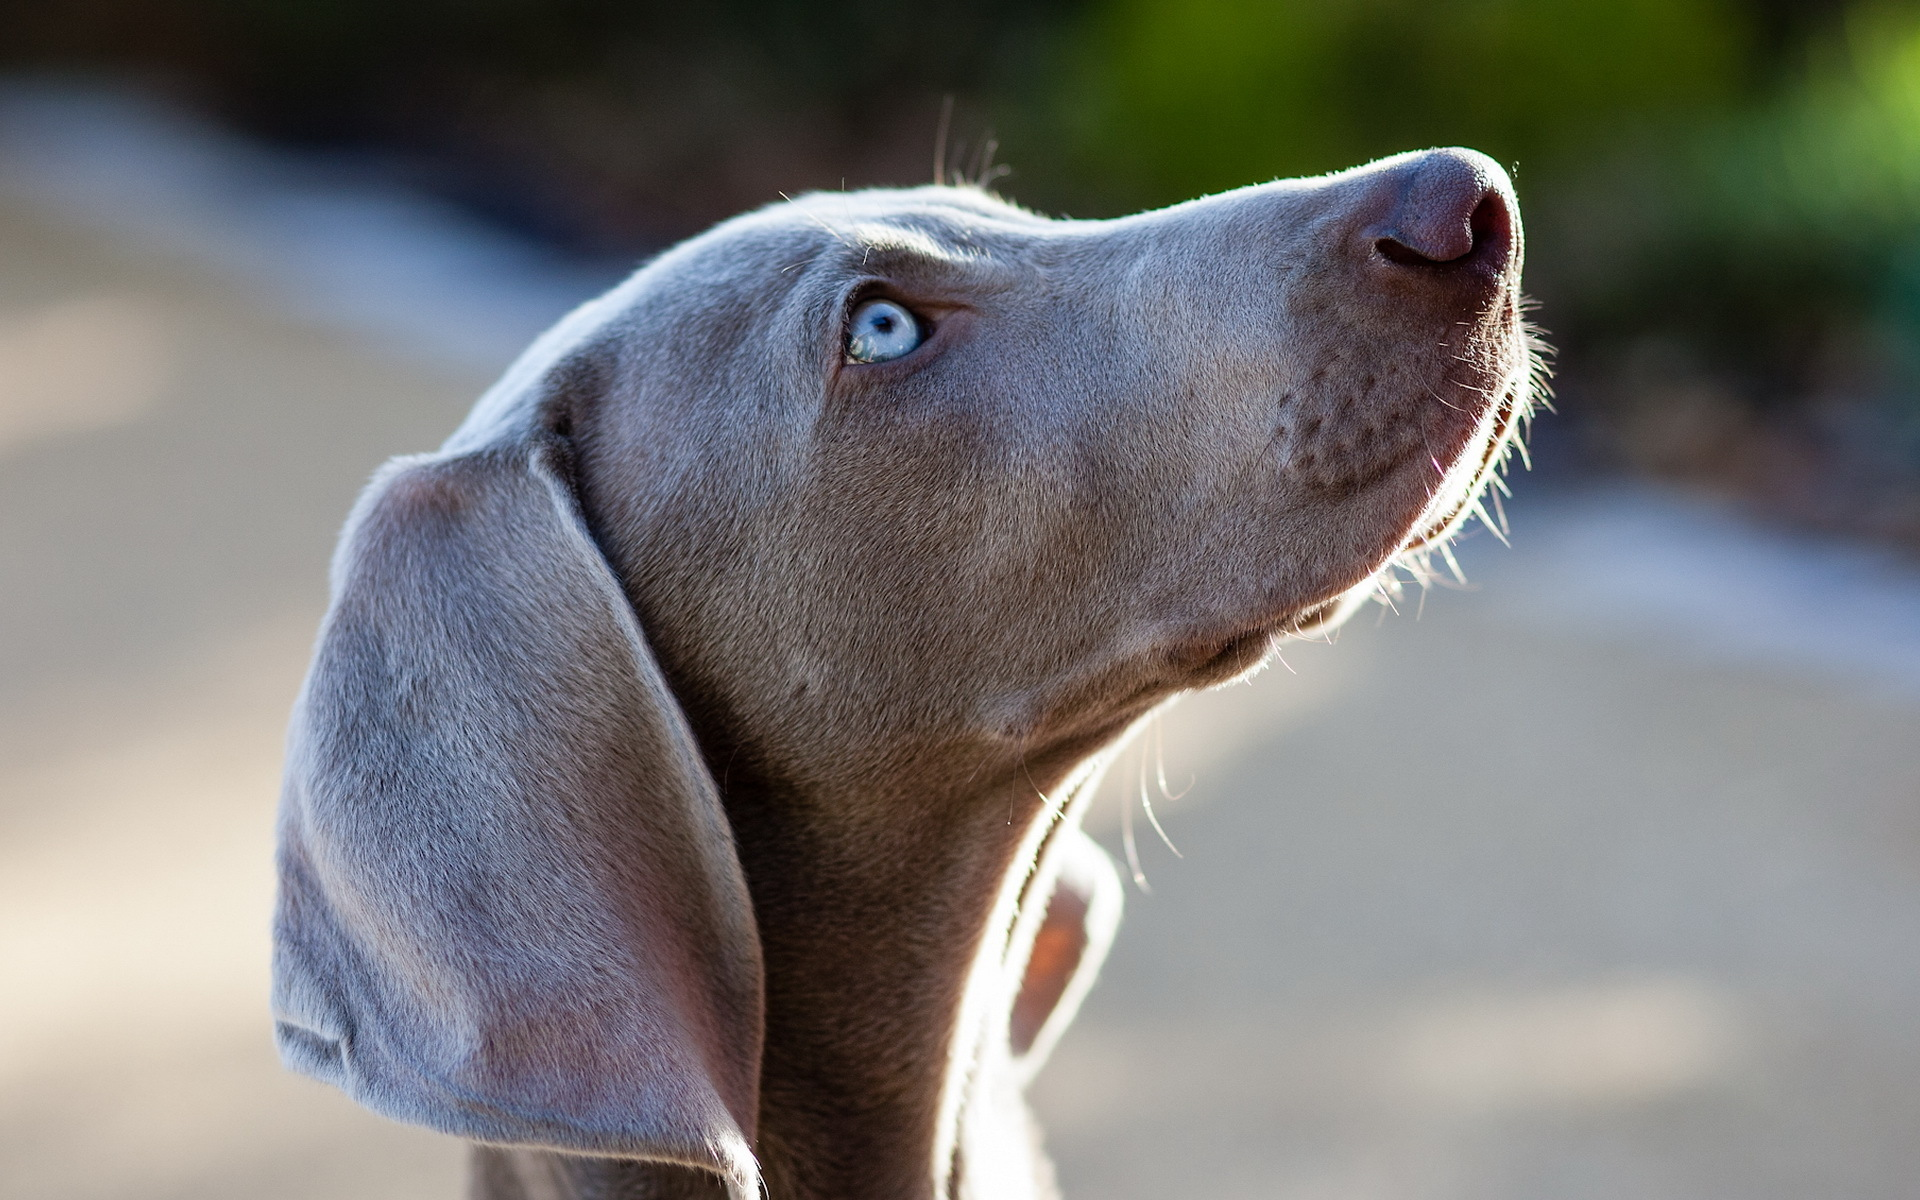 Weimaraner Computer Wallpapers, Desktop Backgrounds | 1920x1200 | ID ... Weimaraner For Sale